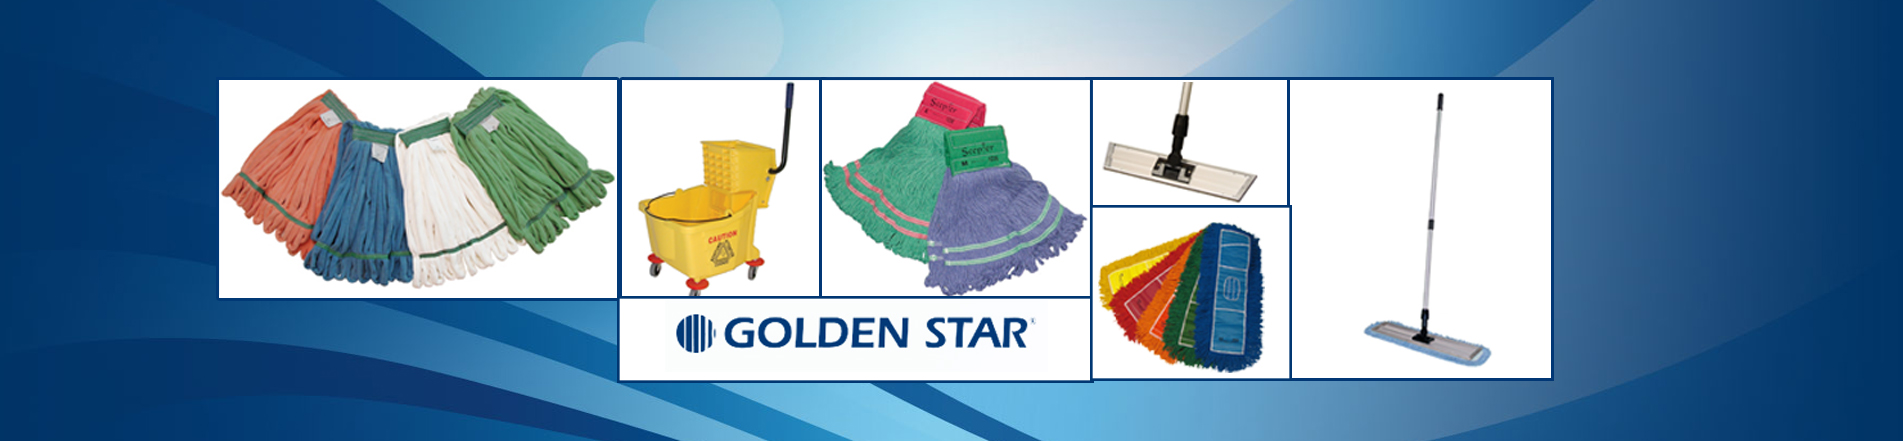 Golden Star Janitorial Products